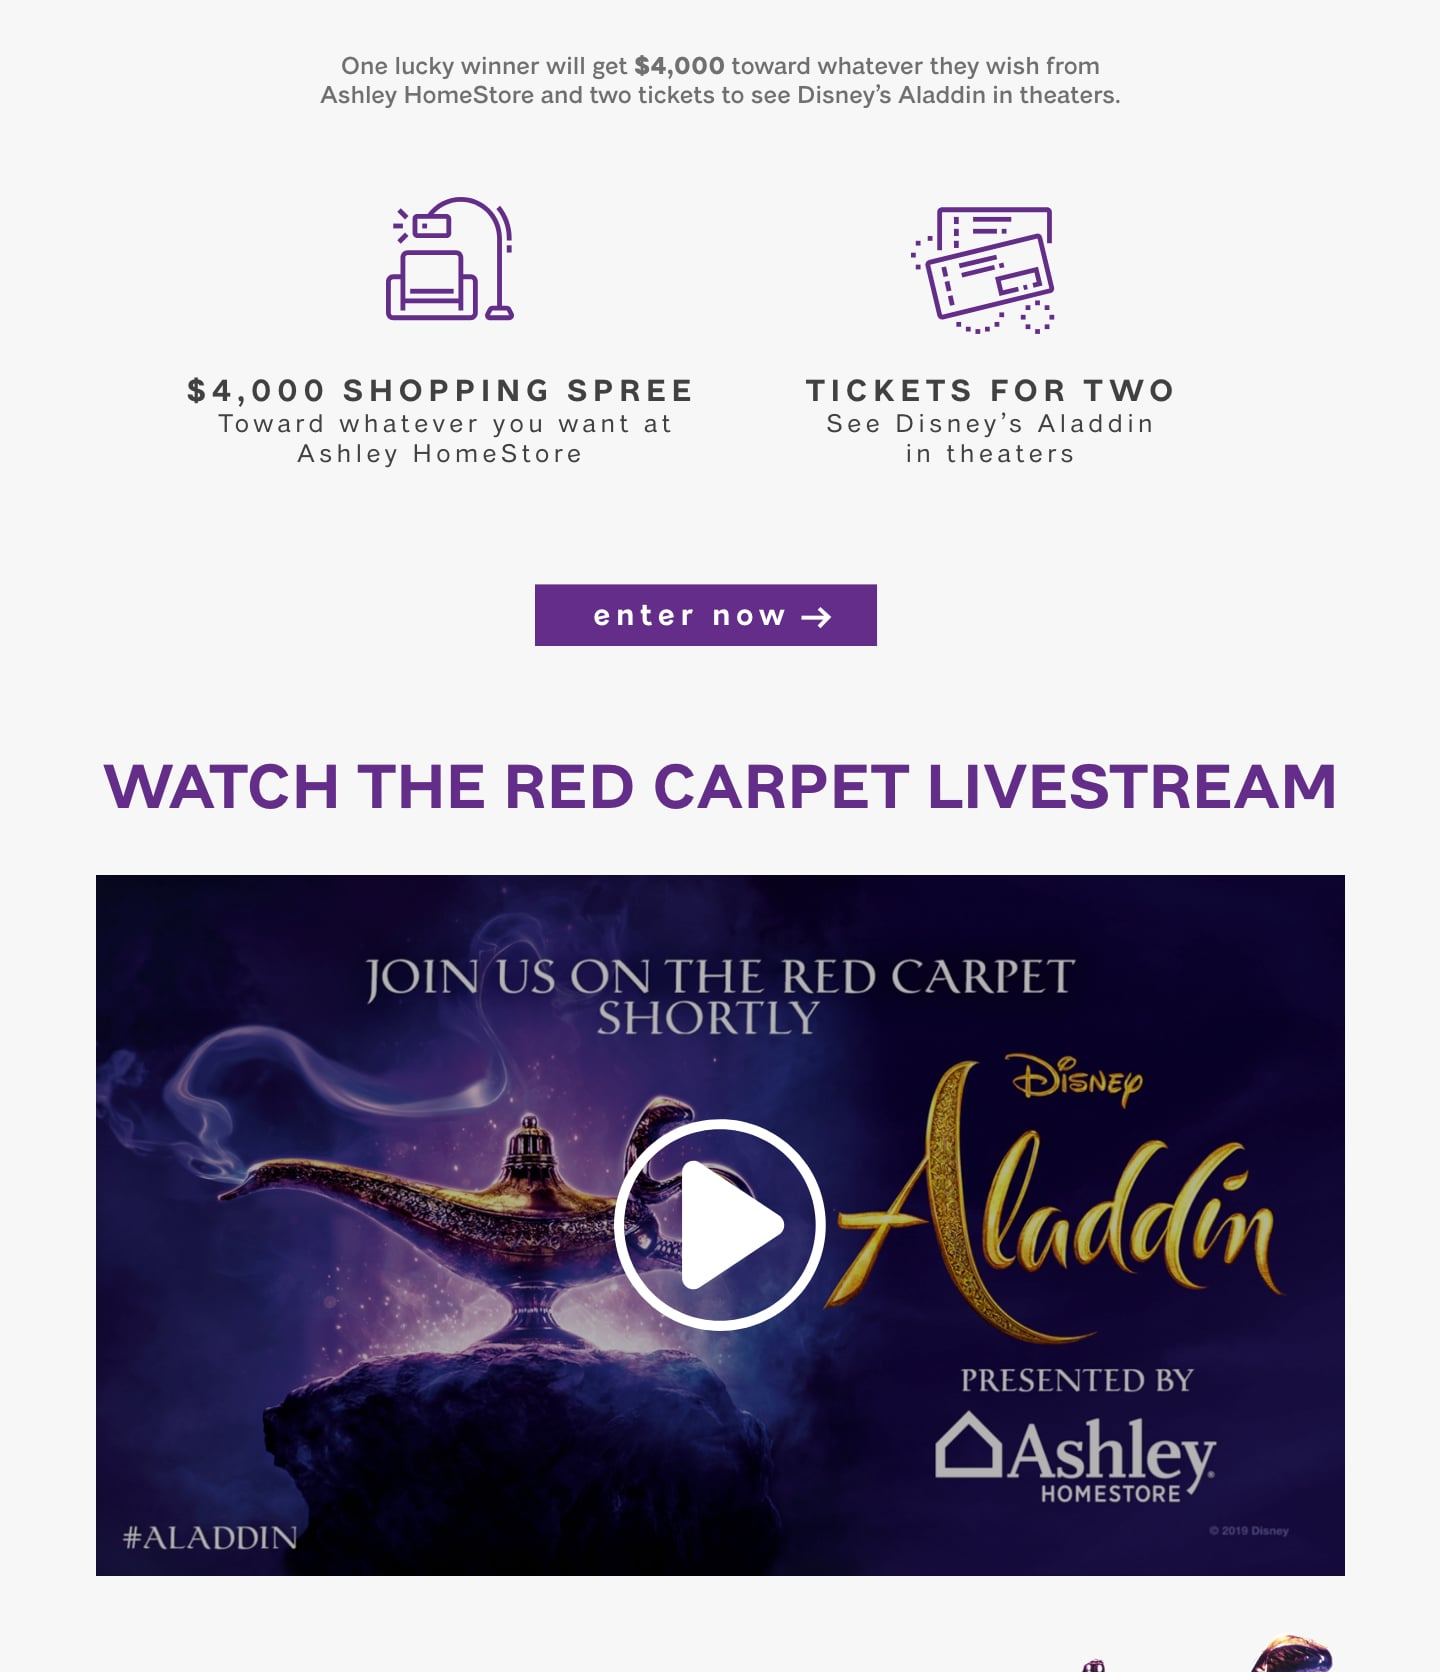 Ashley HomeStore Sweepstakes Celebrating the Release of Disney's